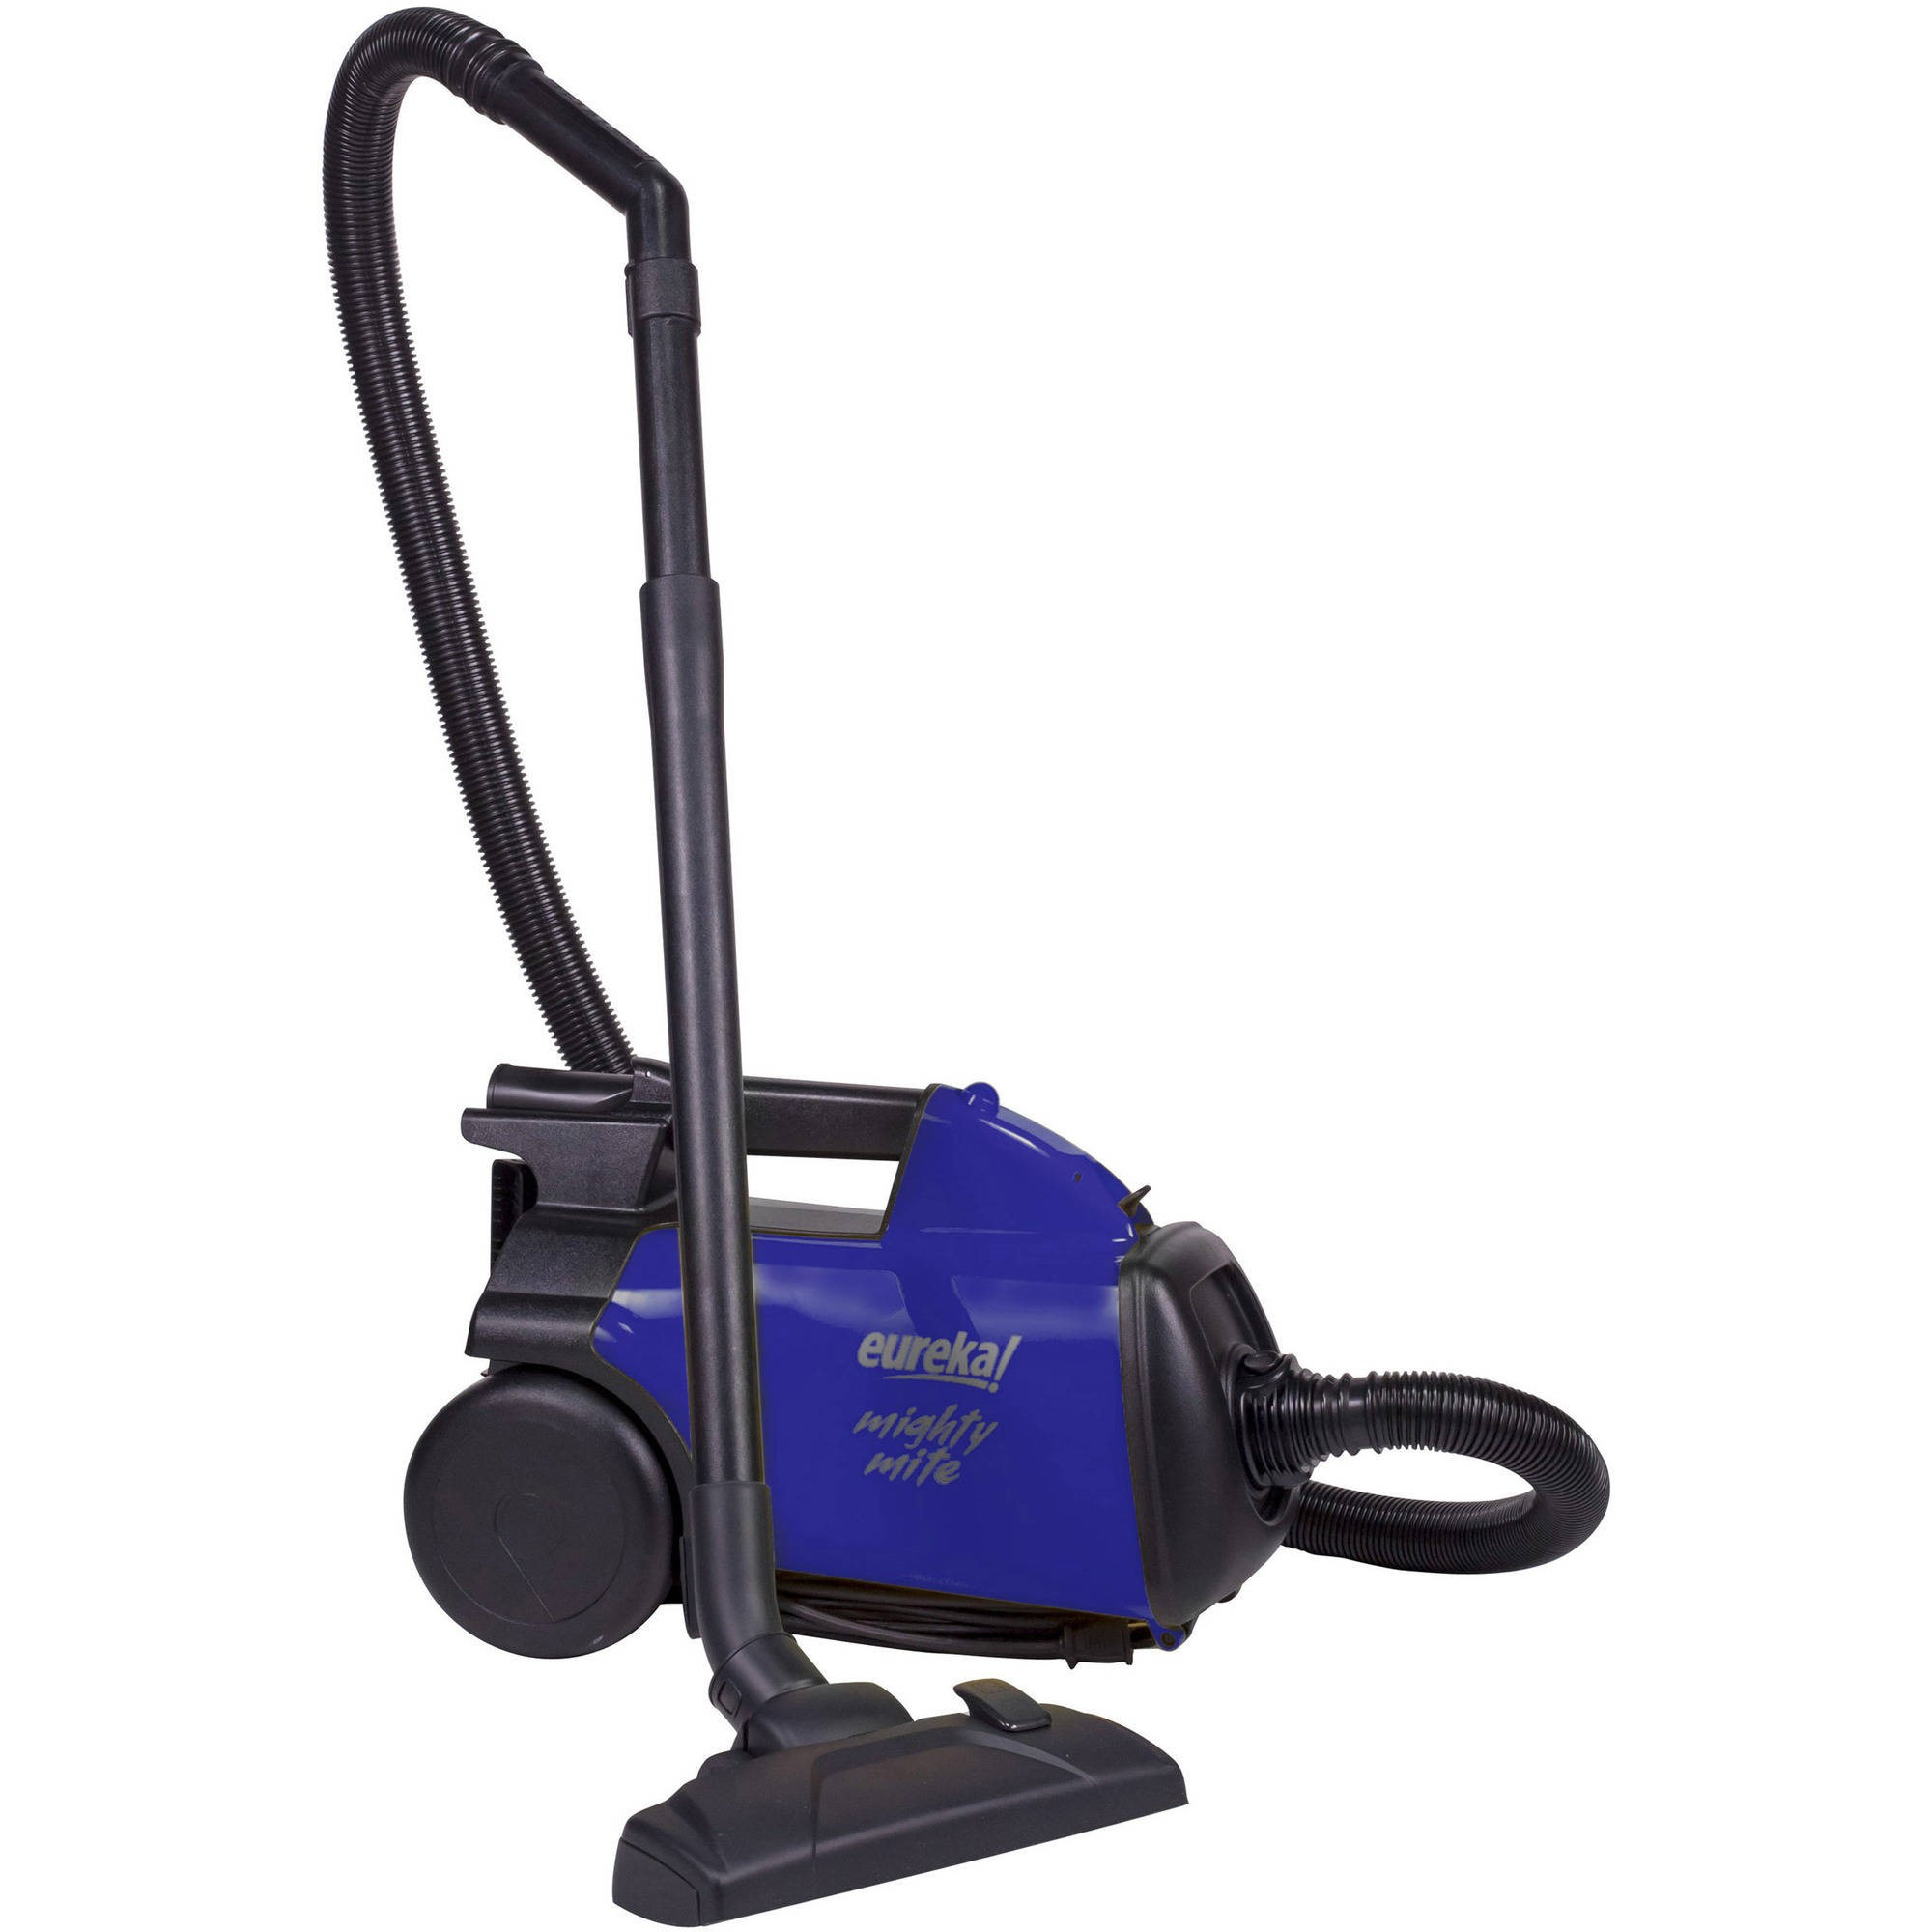 Eureka Mighty Mite Corded Canister Vacuum Cleaner